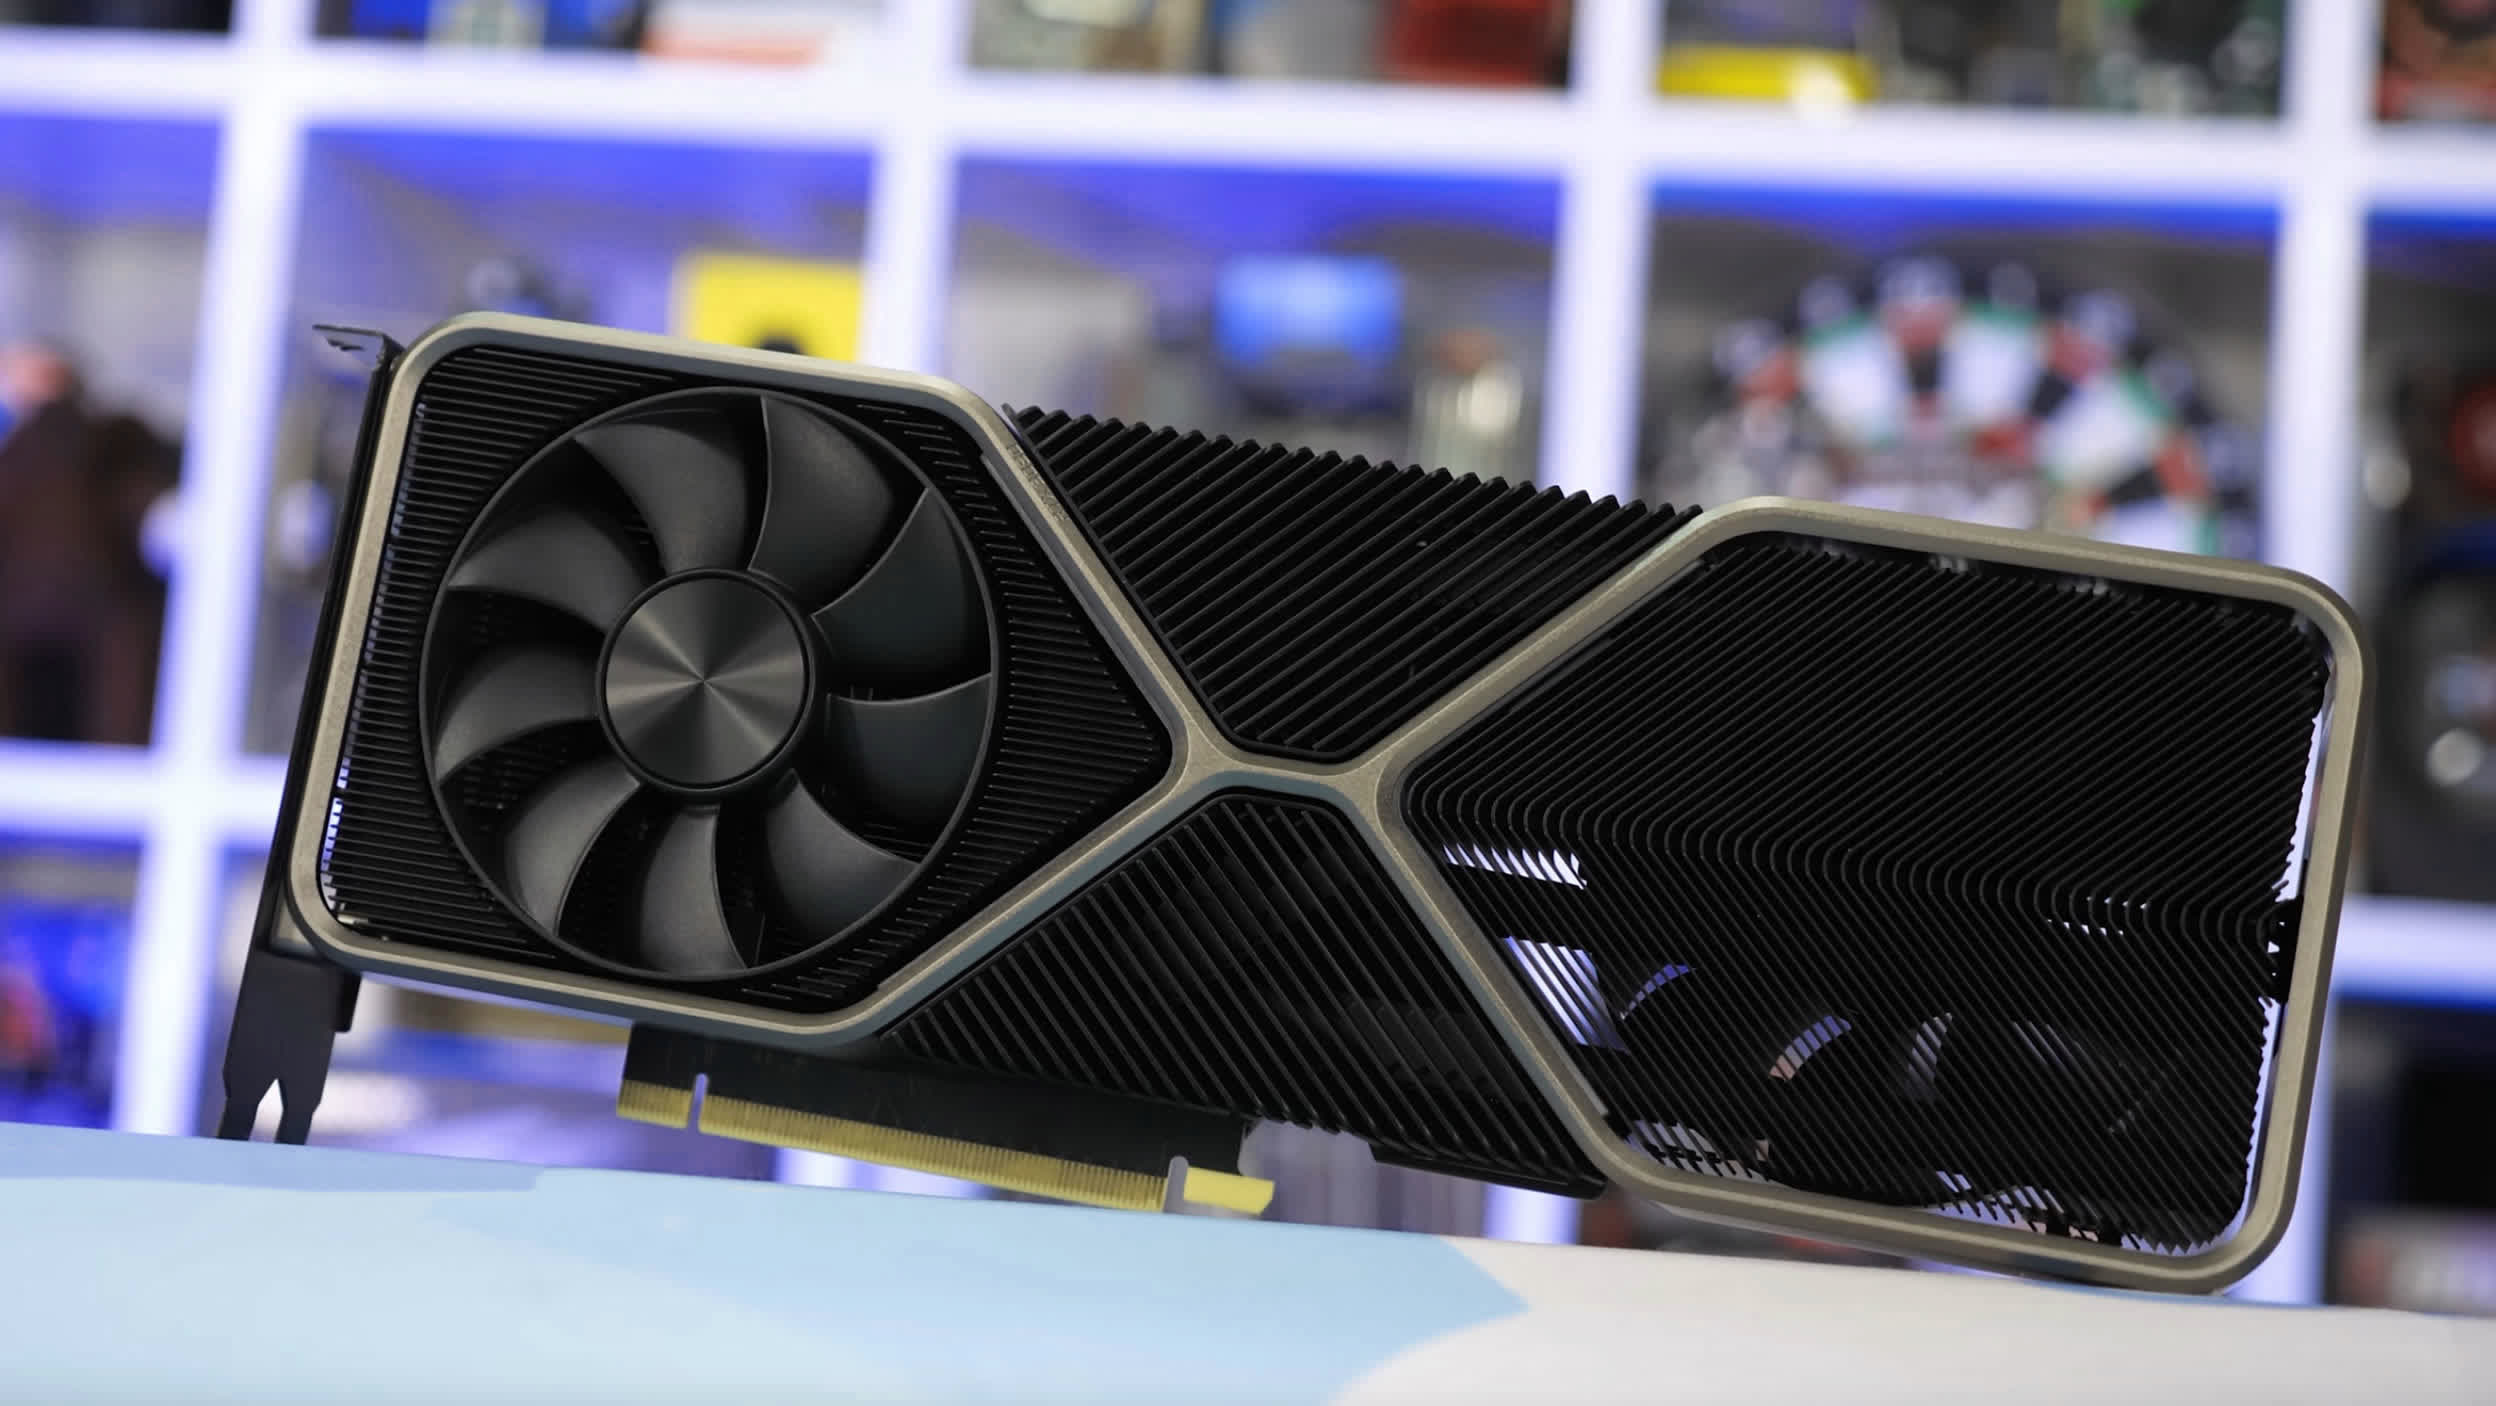 Rumor: Nvidia moves RTX 3080 Ti launch to February because Big Navi offers little threat